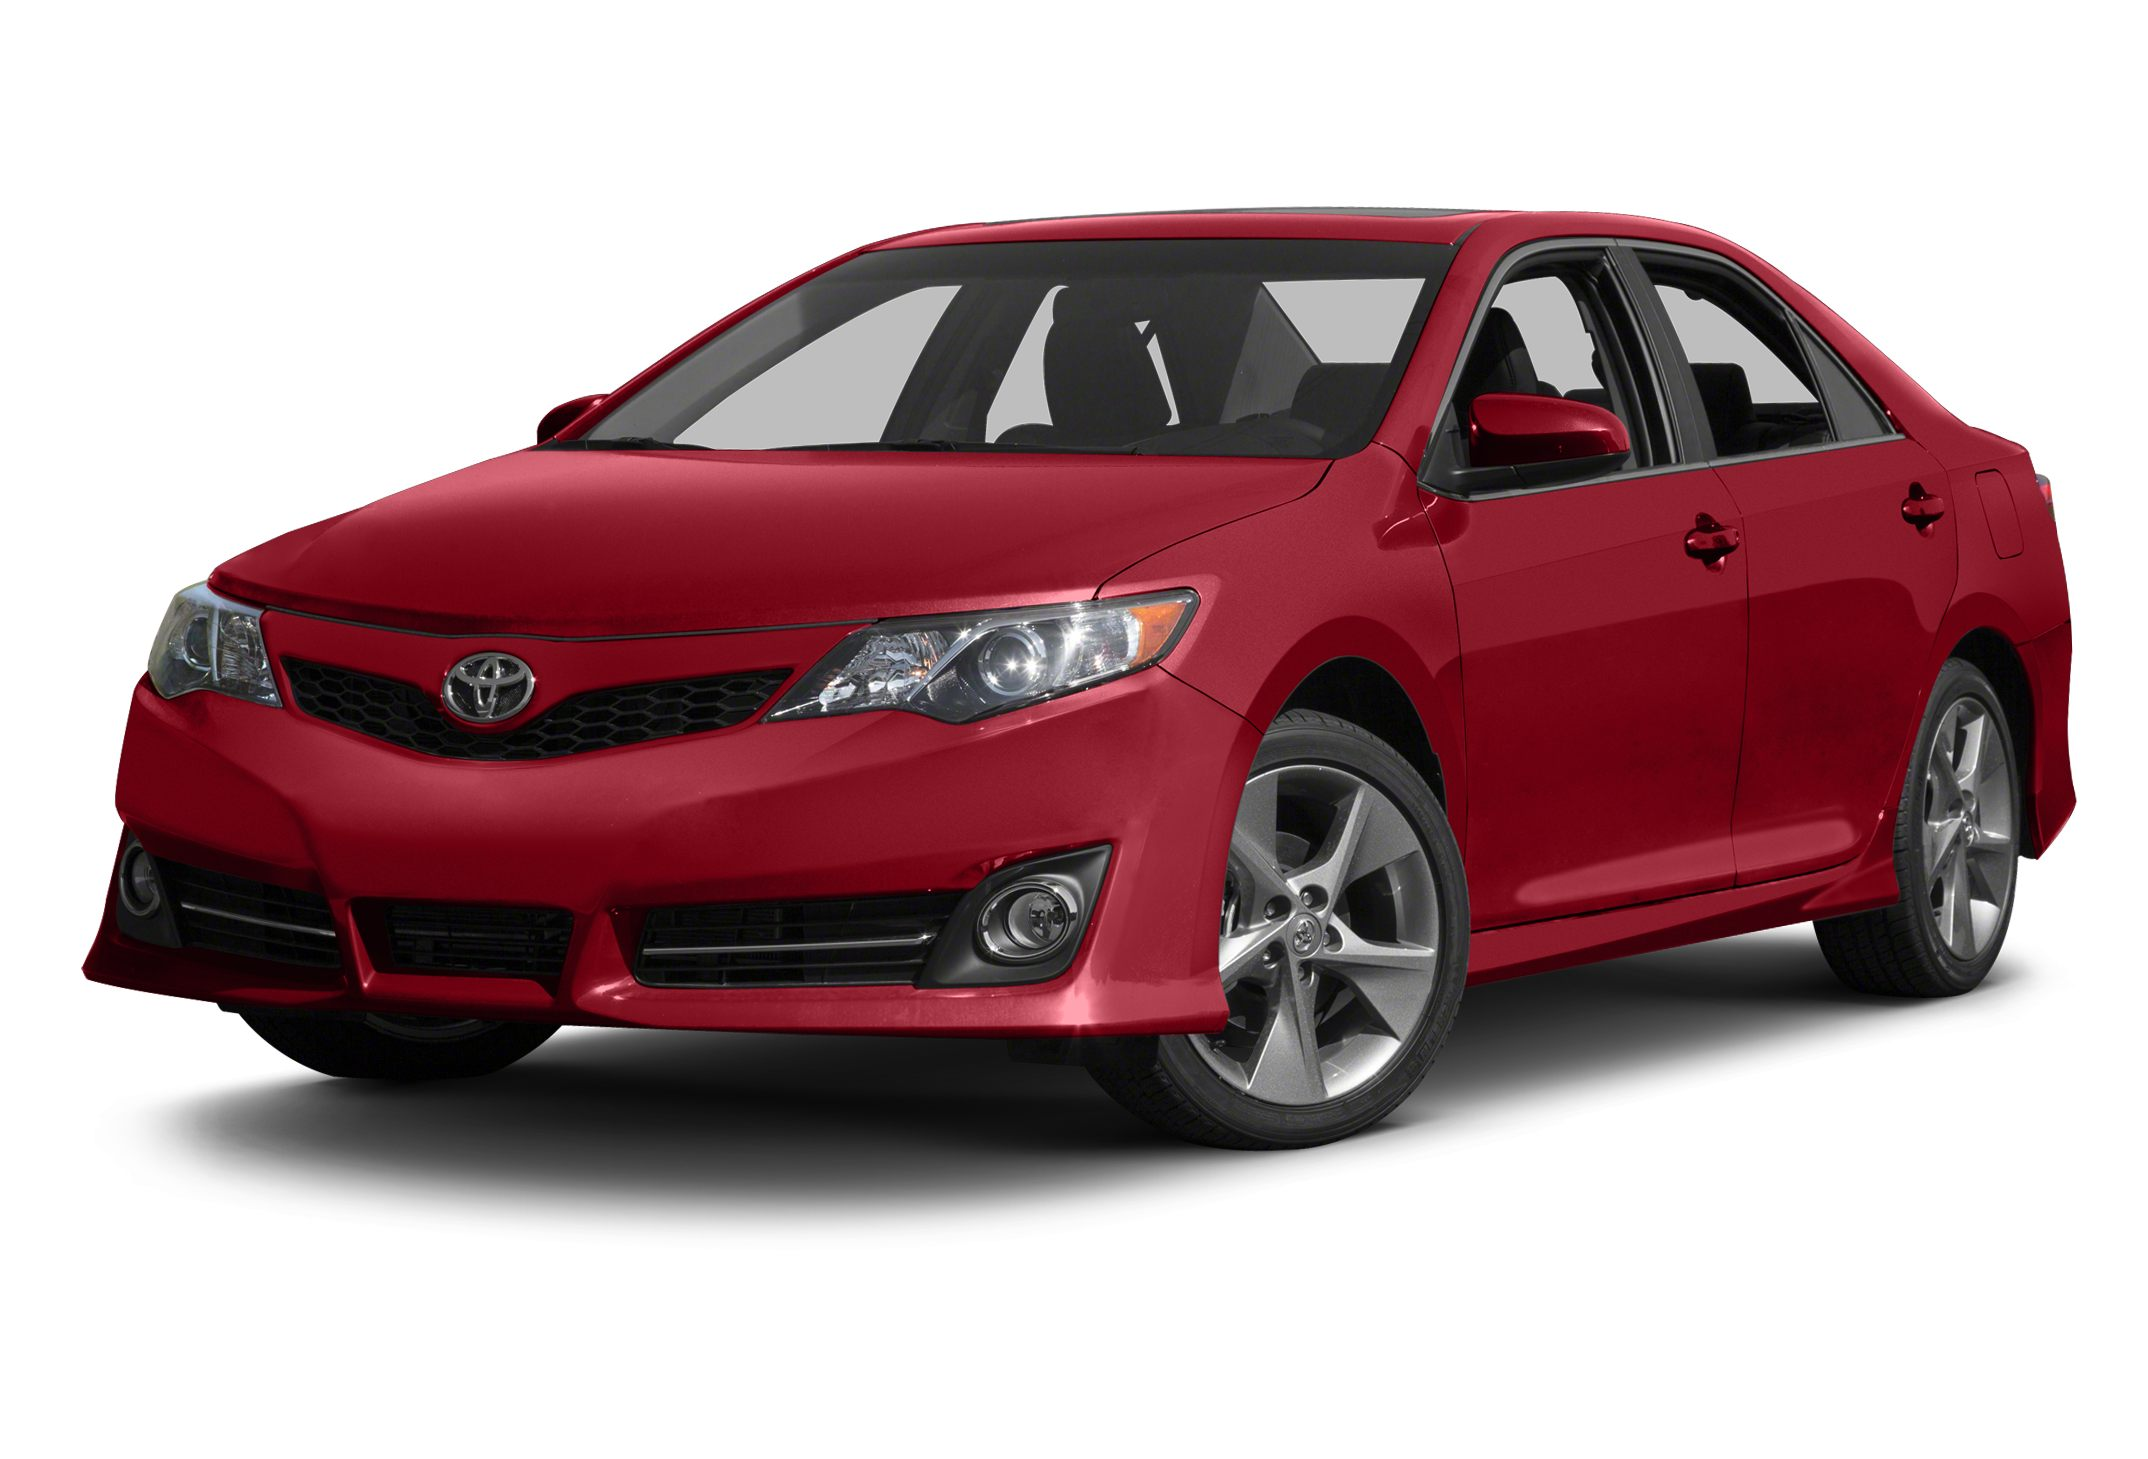 2012 Toyota Camry SE Sedan for sale in Savannah for $15,991 with 38,219 miles.